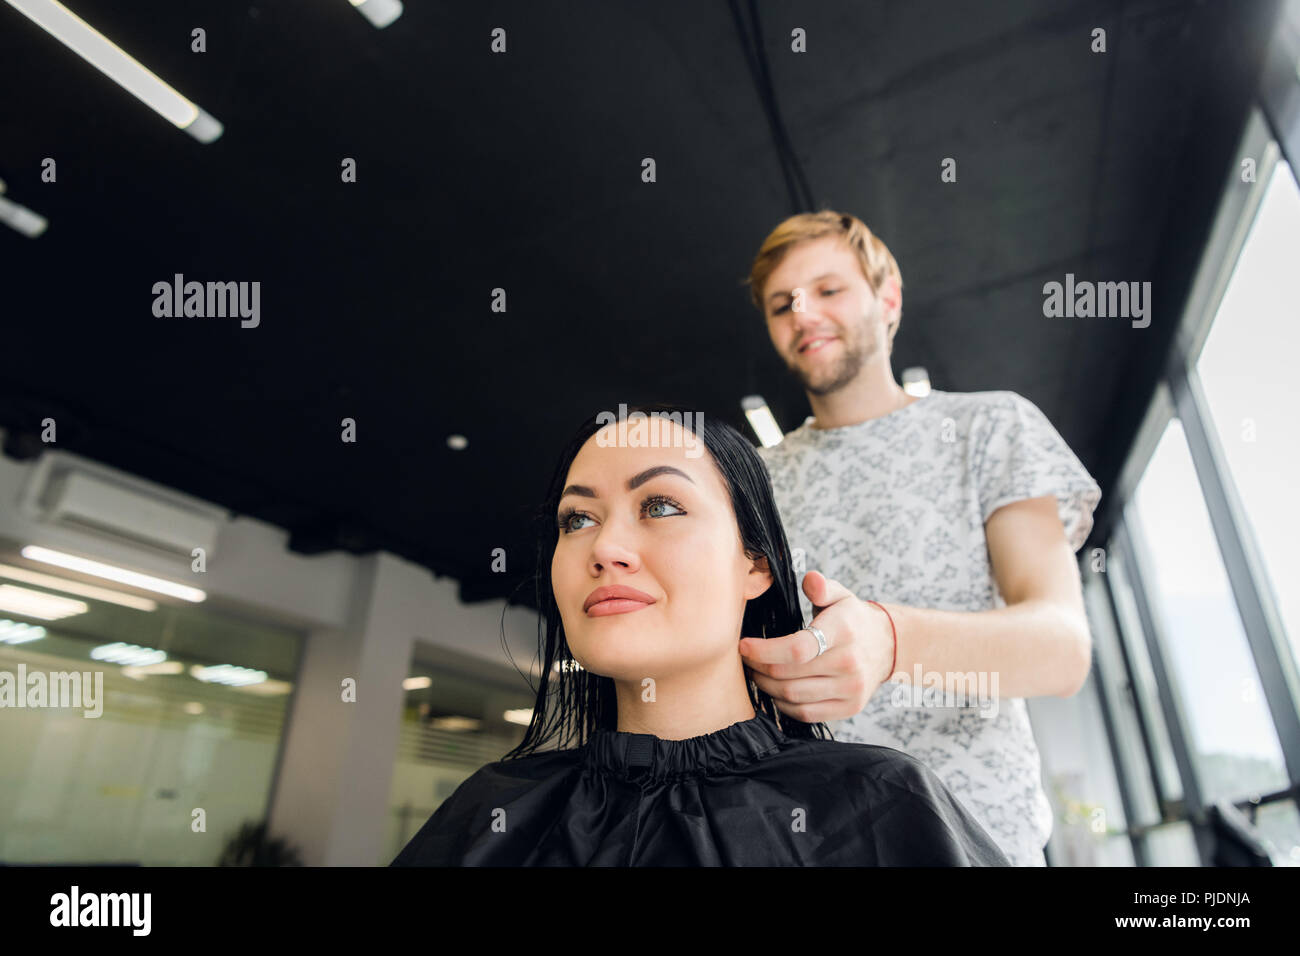 Happy young brunette woman and hairdresser preparing for haircut or hairstyle at beaty salon - Stock Image